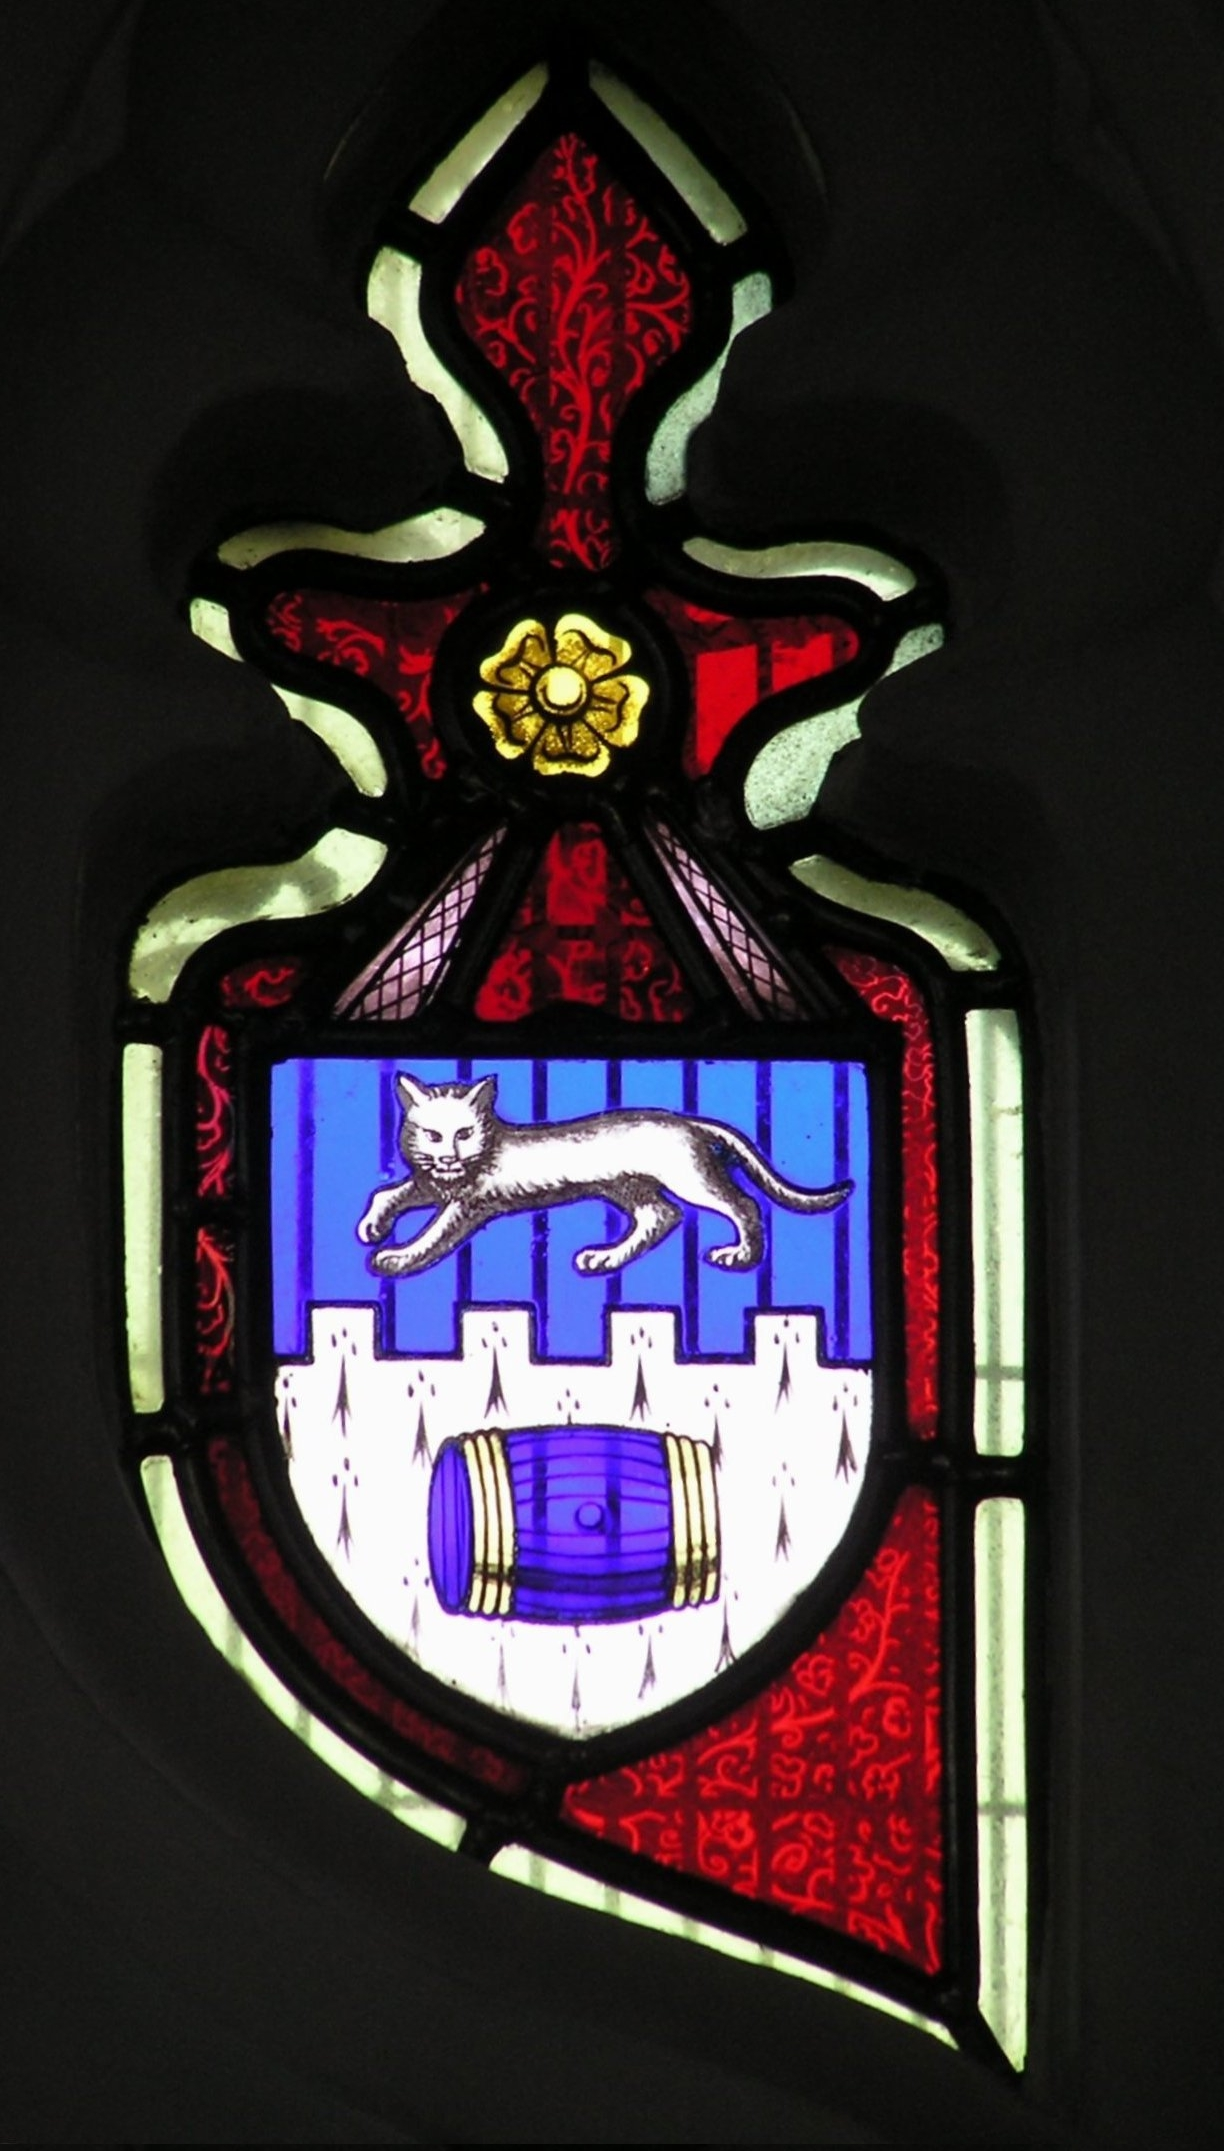 Stained glass rebus in south window of Church - 1850